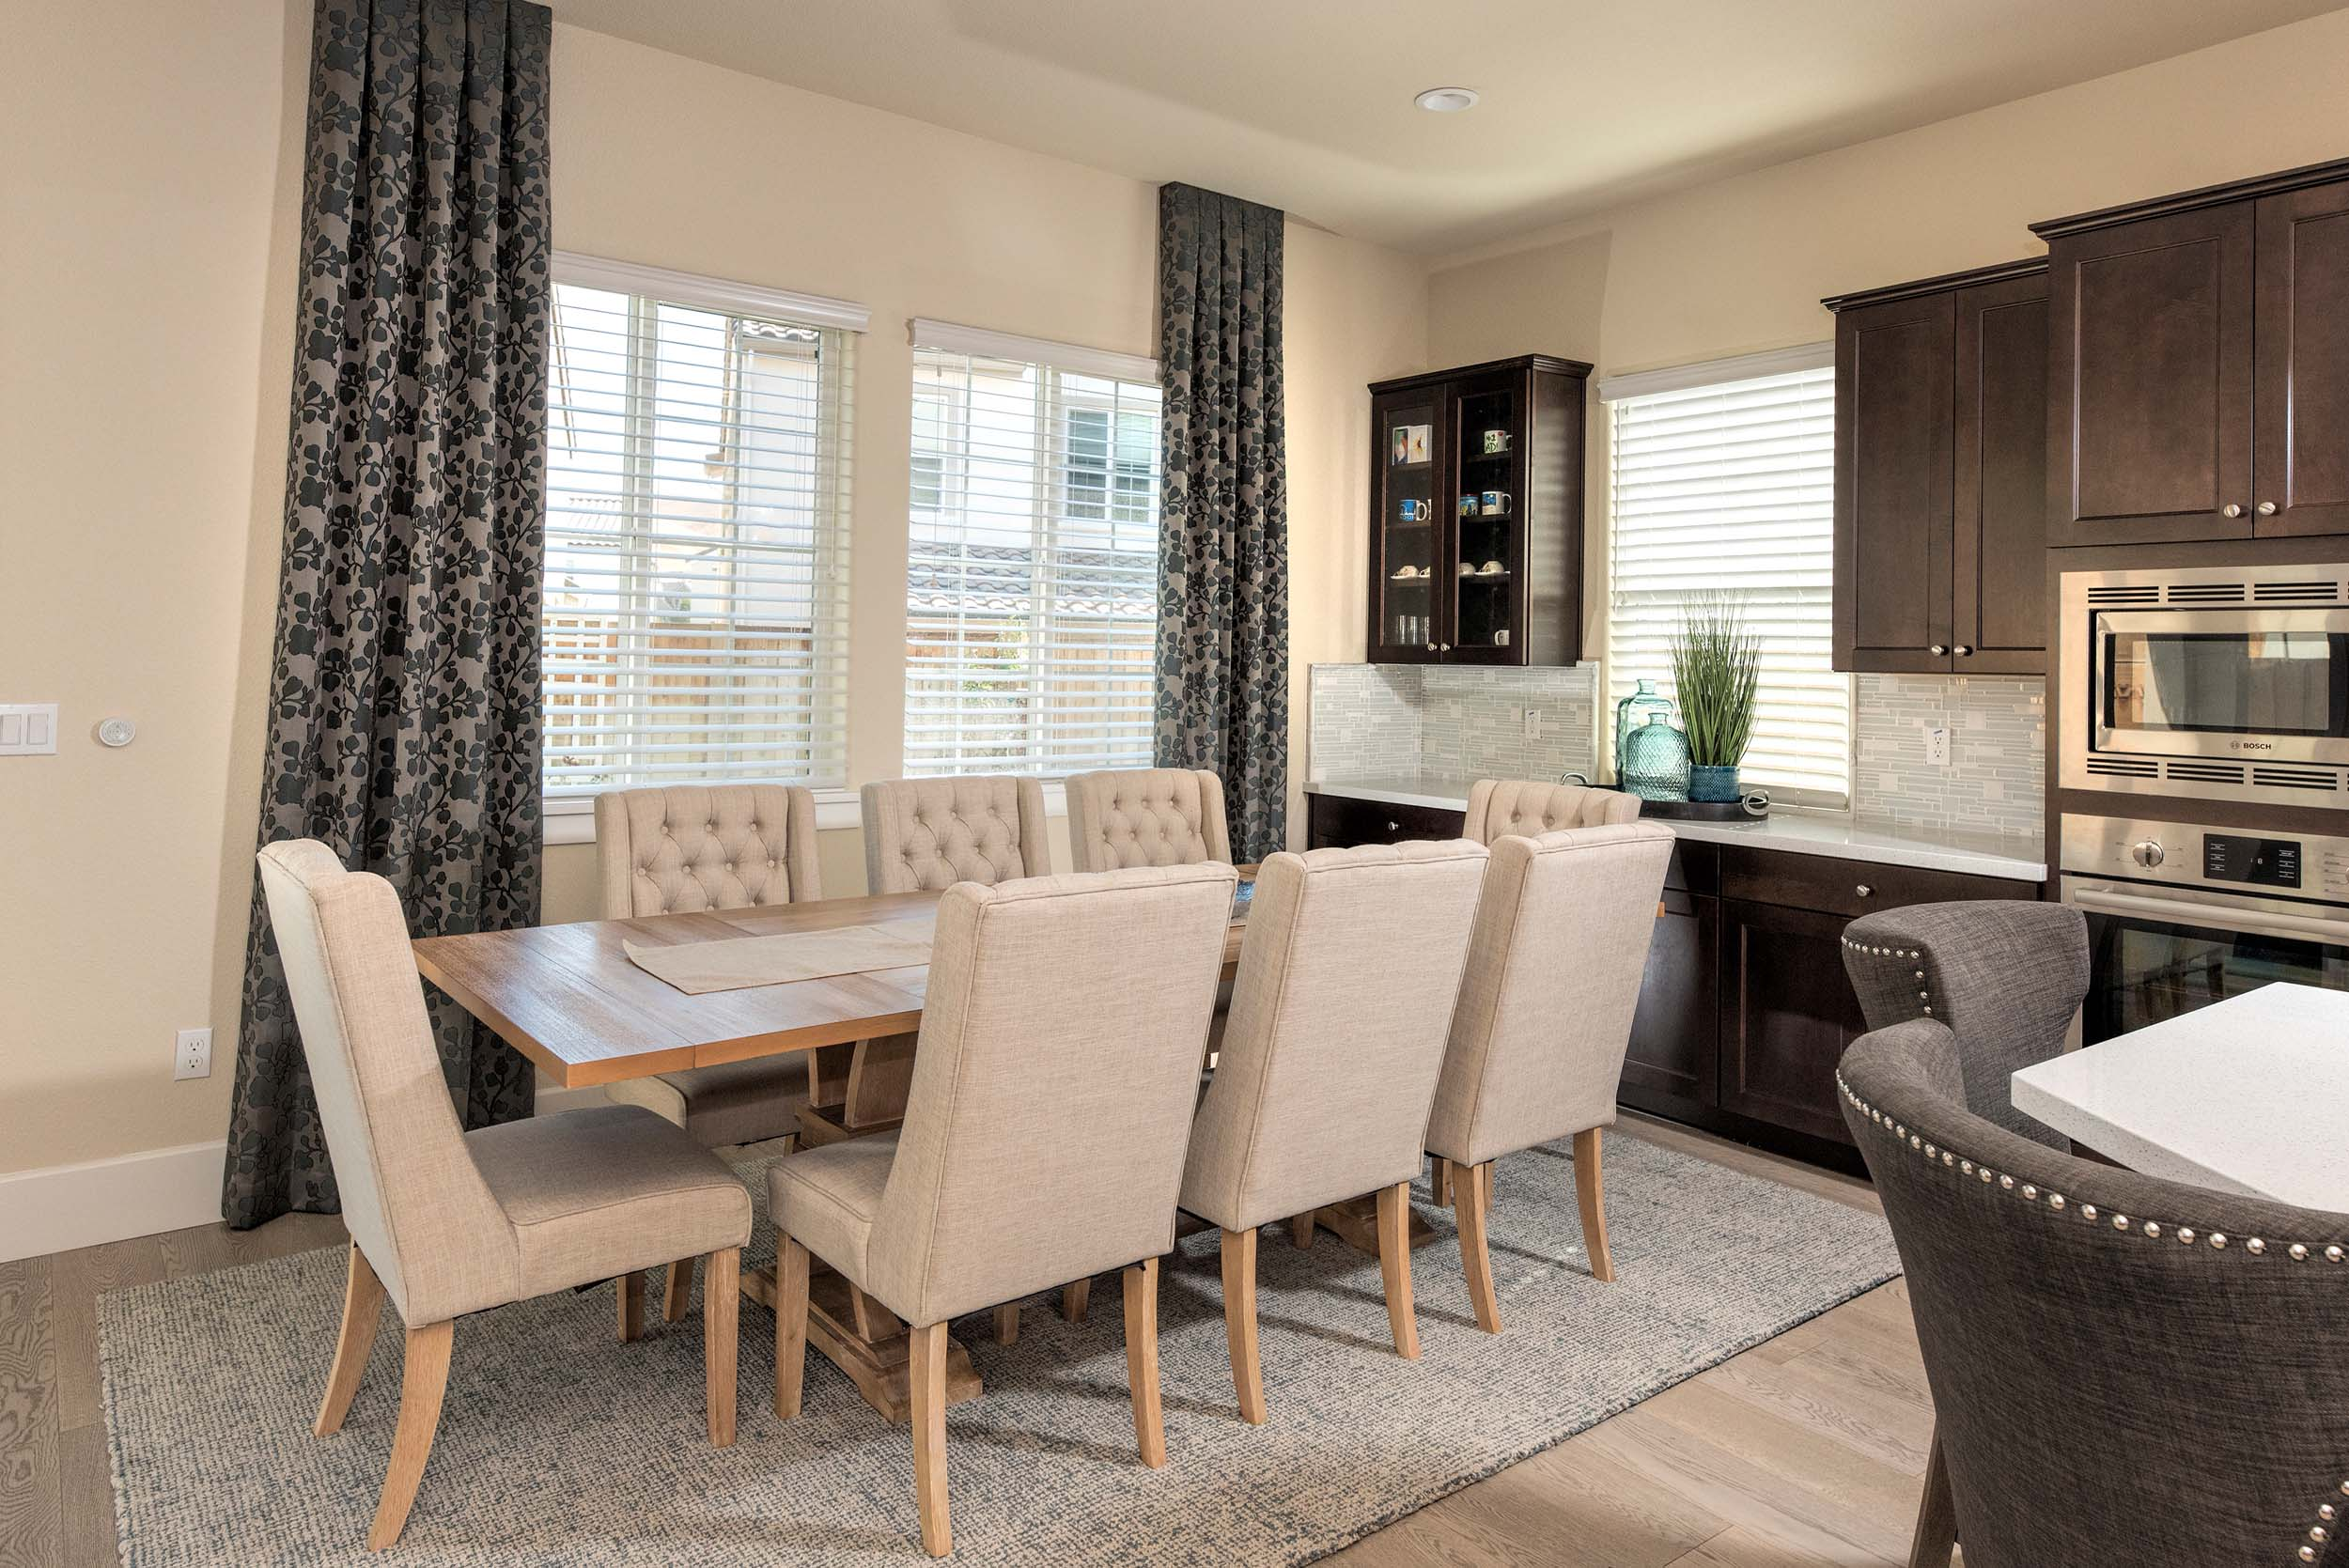 Dining room with chairs, wooden table, hardwood floor, and wooden cabinets